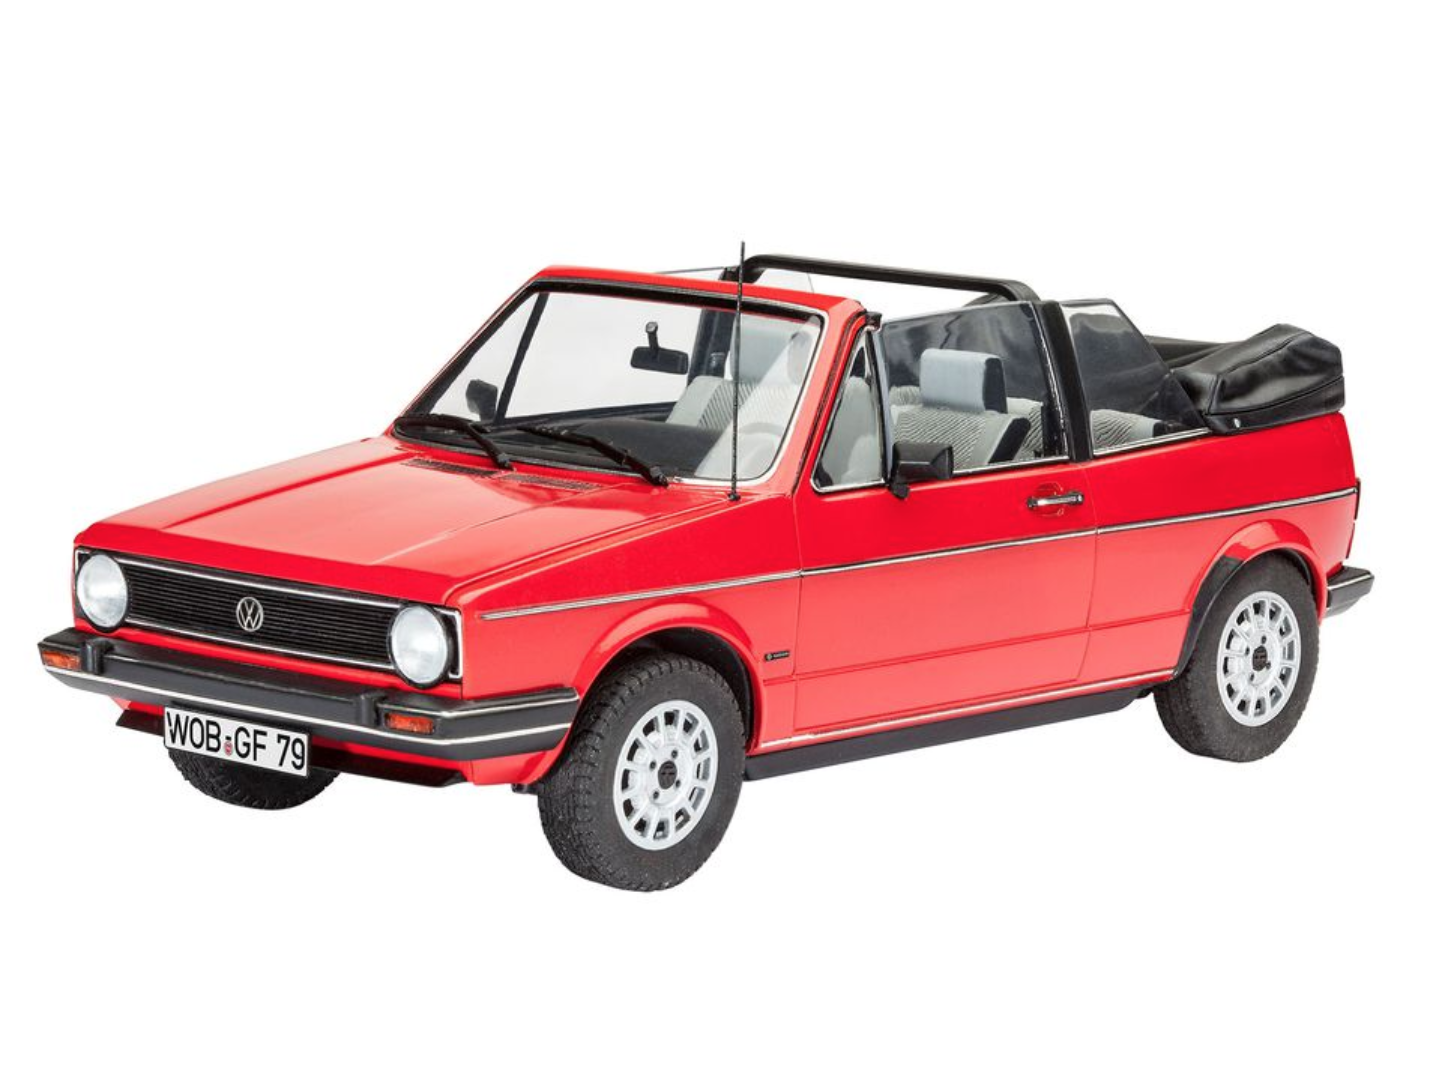 vw golf 1 cabriolet model kit by revell 1 24 scale. Black Bedroom Furniture Sets. Home Design Ideas